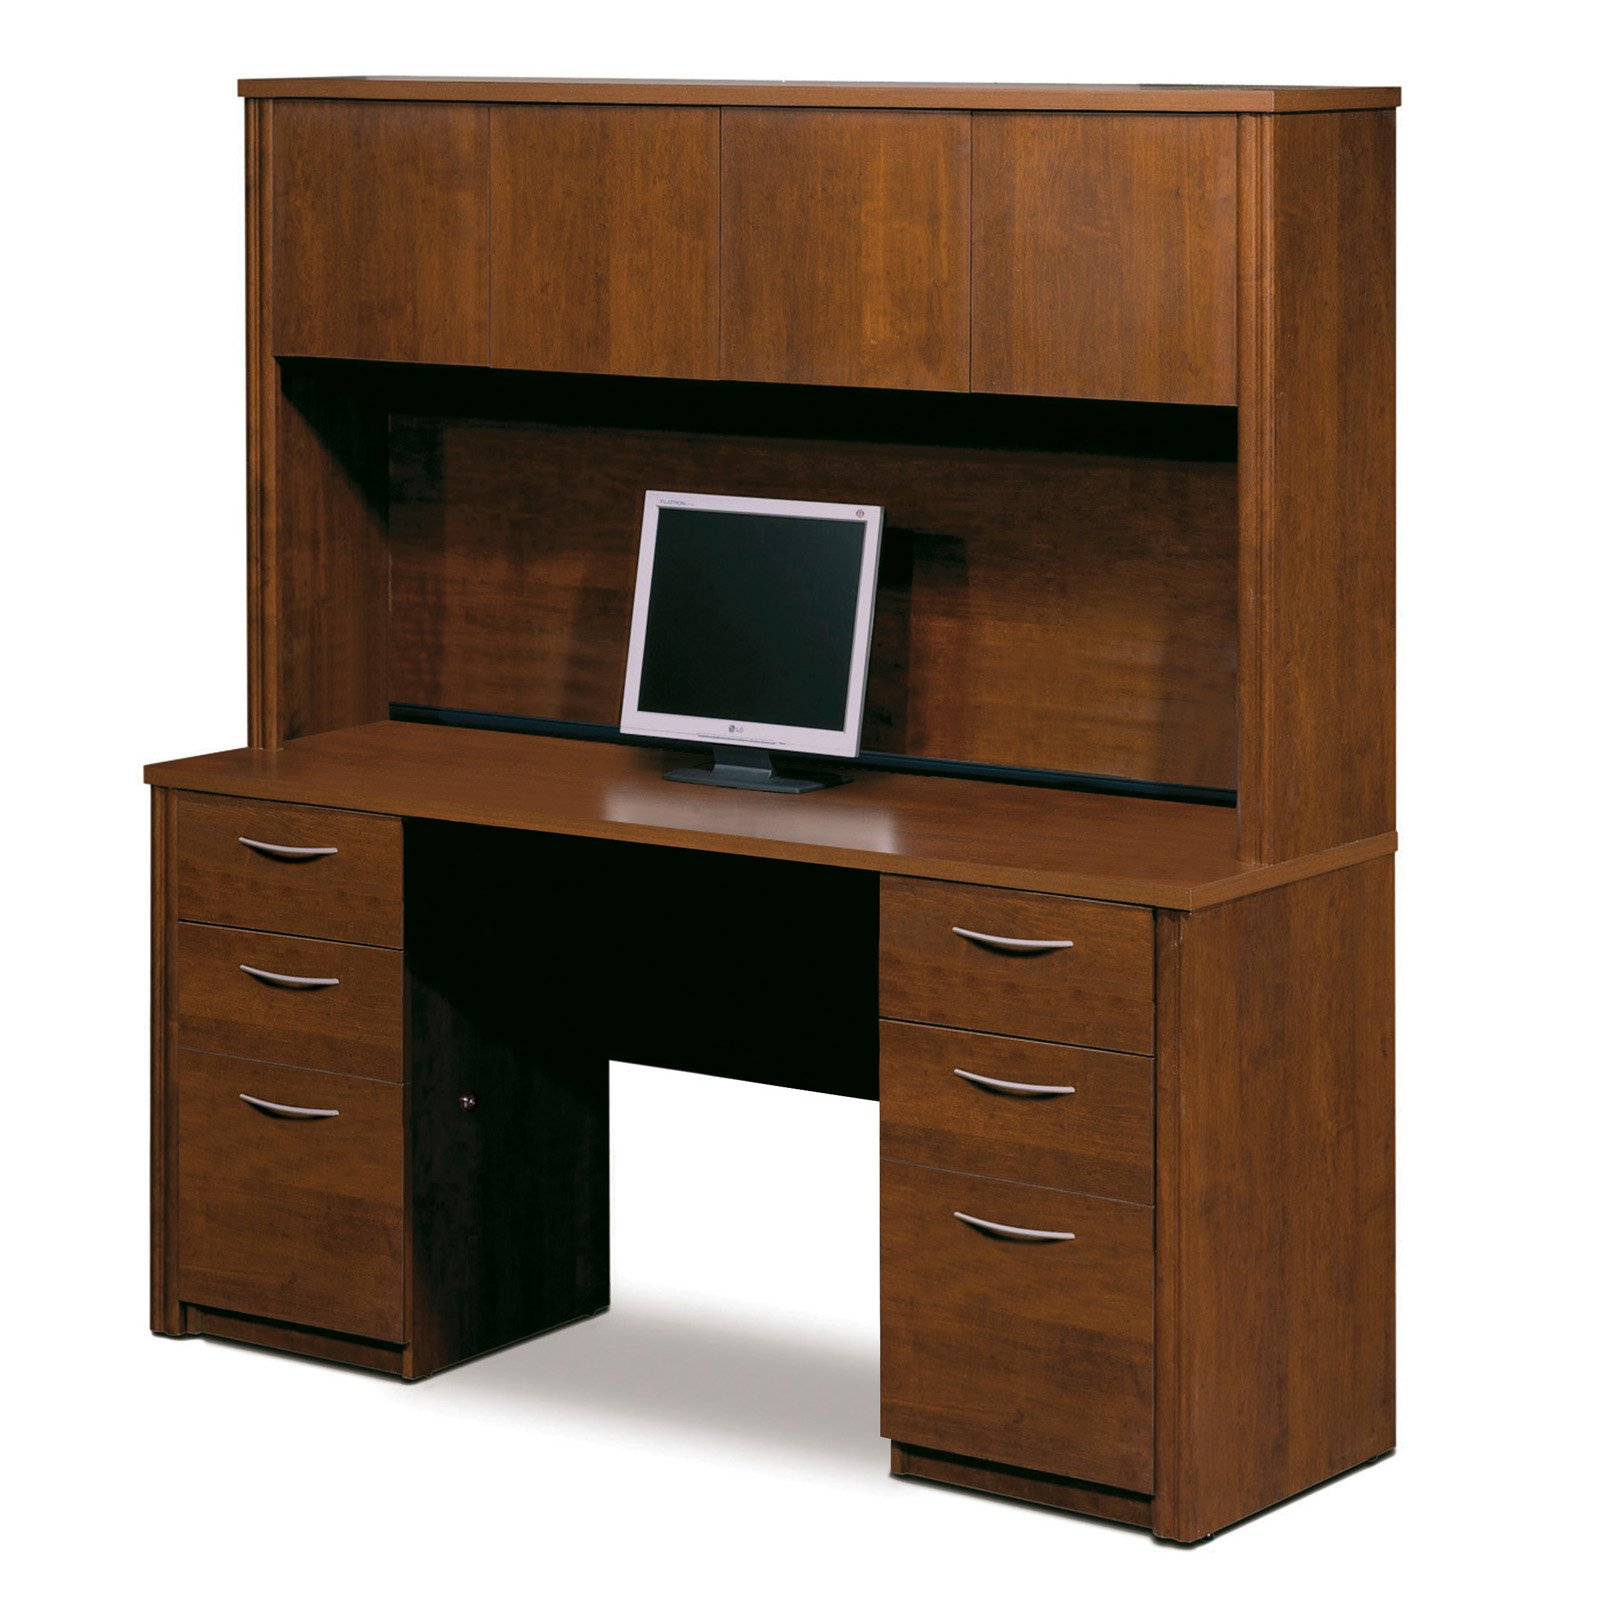 Bestar Embassy Credenza and Hutch Kit Tuscany Brown by Bestar